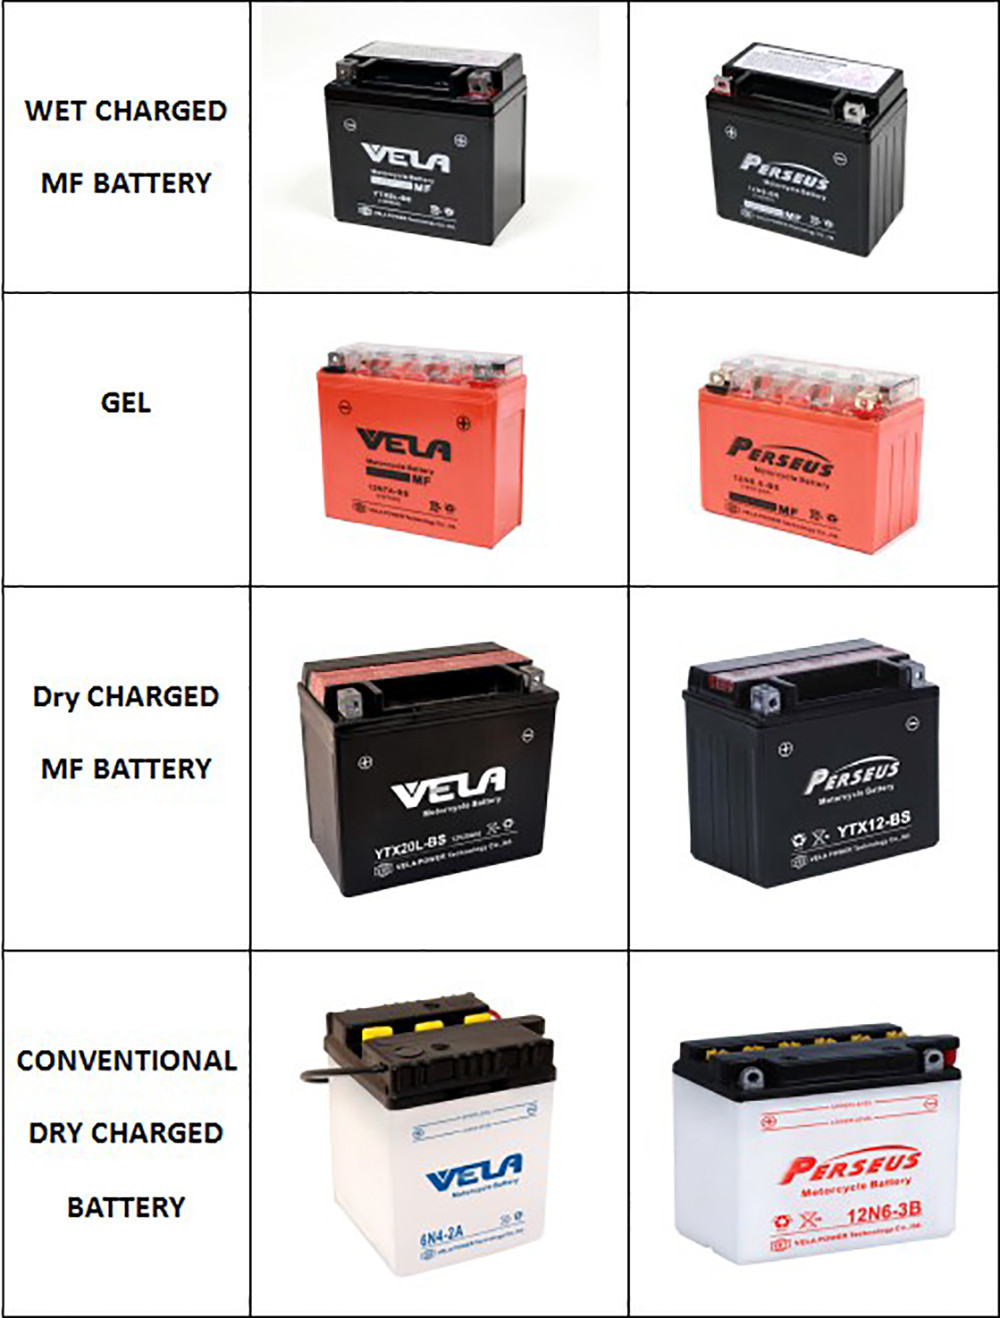 VELA professional motorcycle battery voltage excellent for motorbikes-2